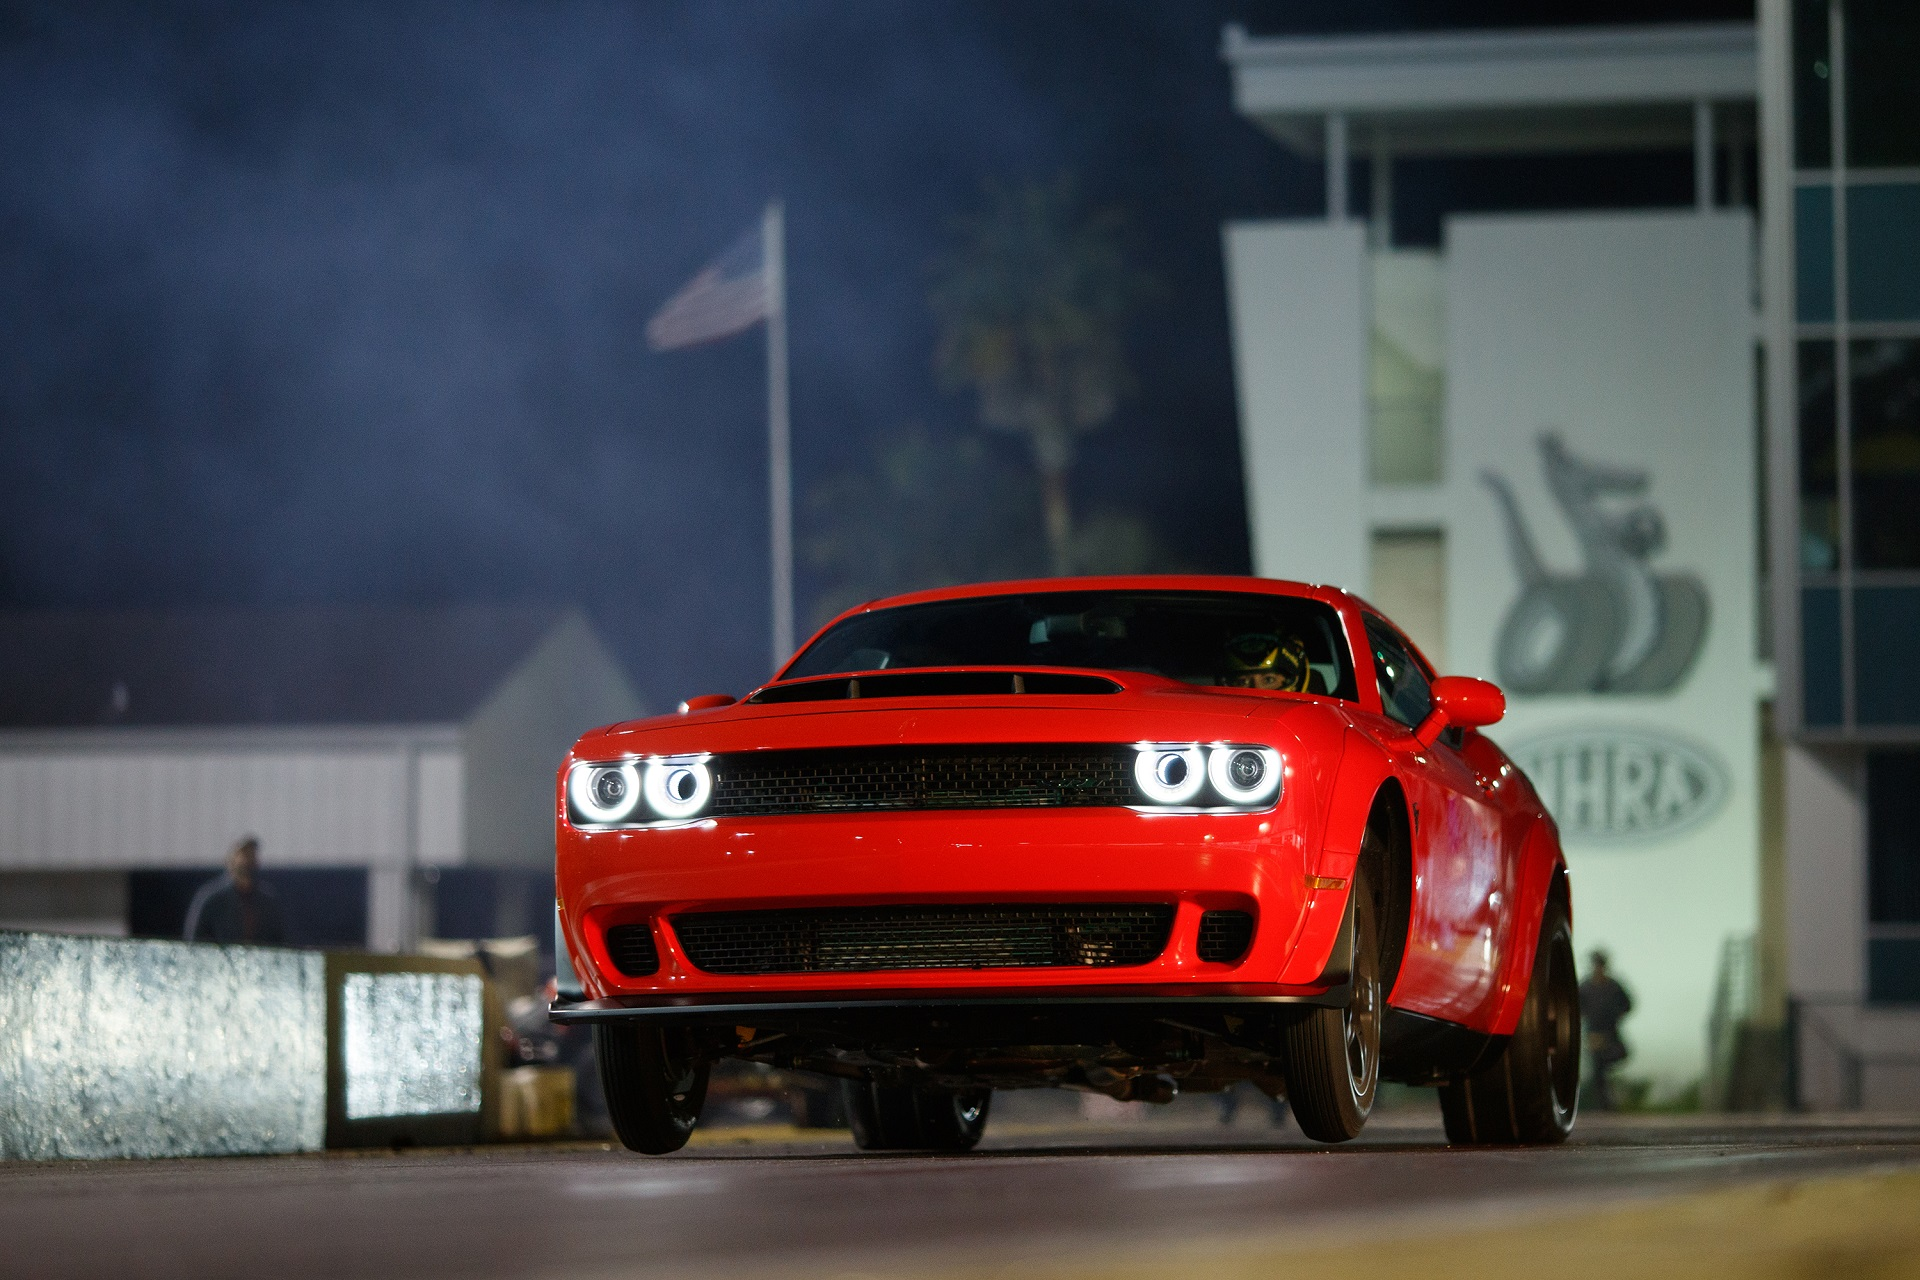 2018 Dodge Challenger Srt Demon Recalled Because Cruise Control Can Stay On